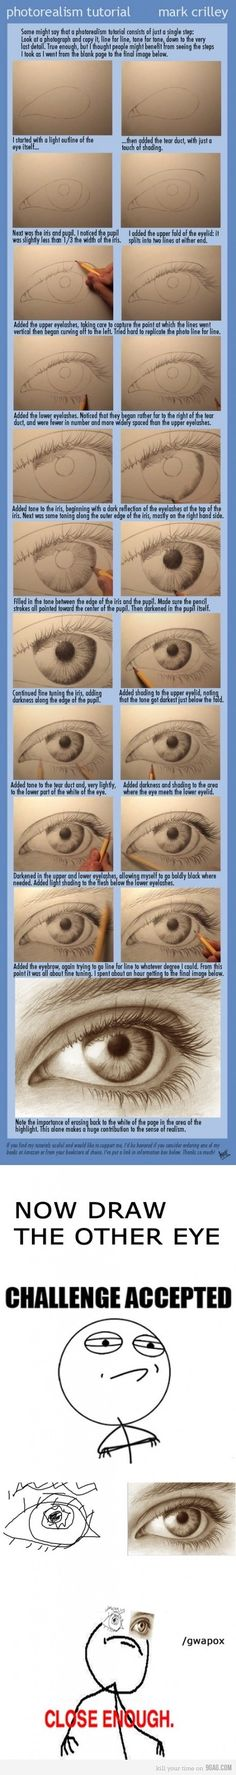 Drawing Tutorial by nbabraitis